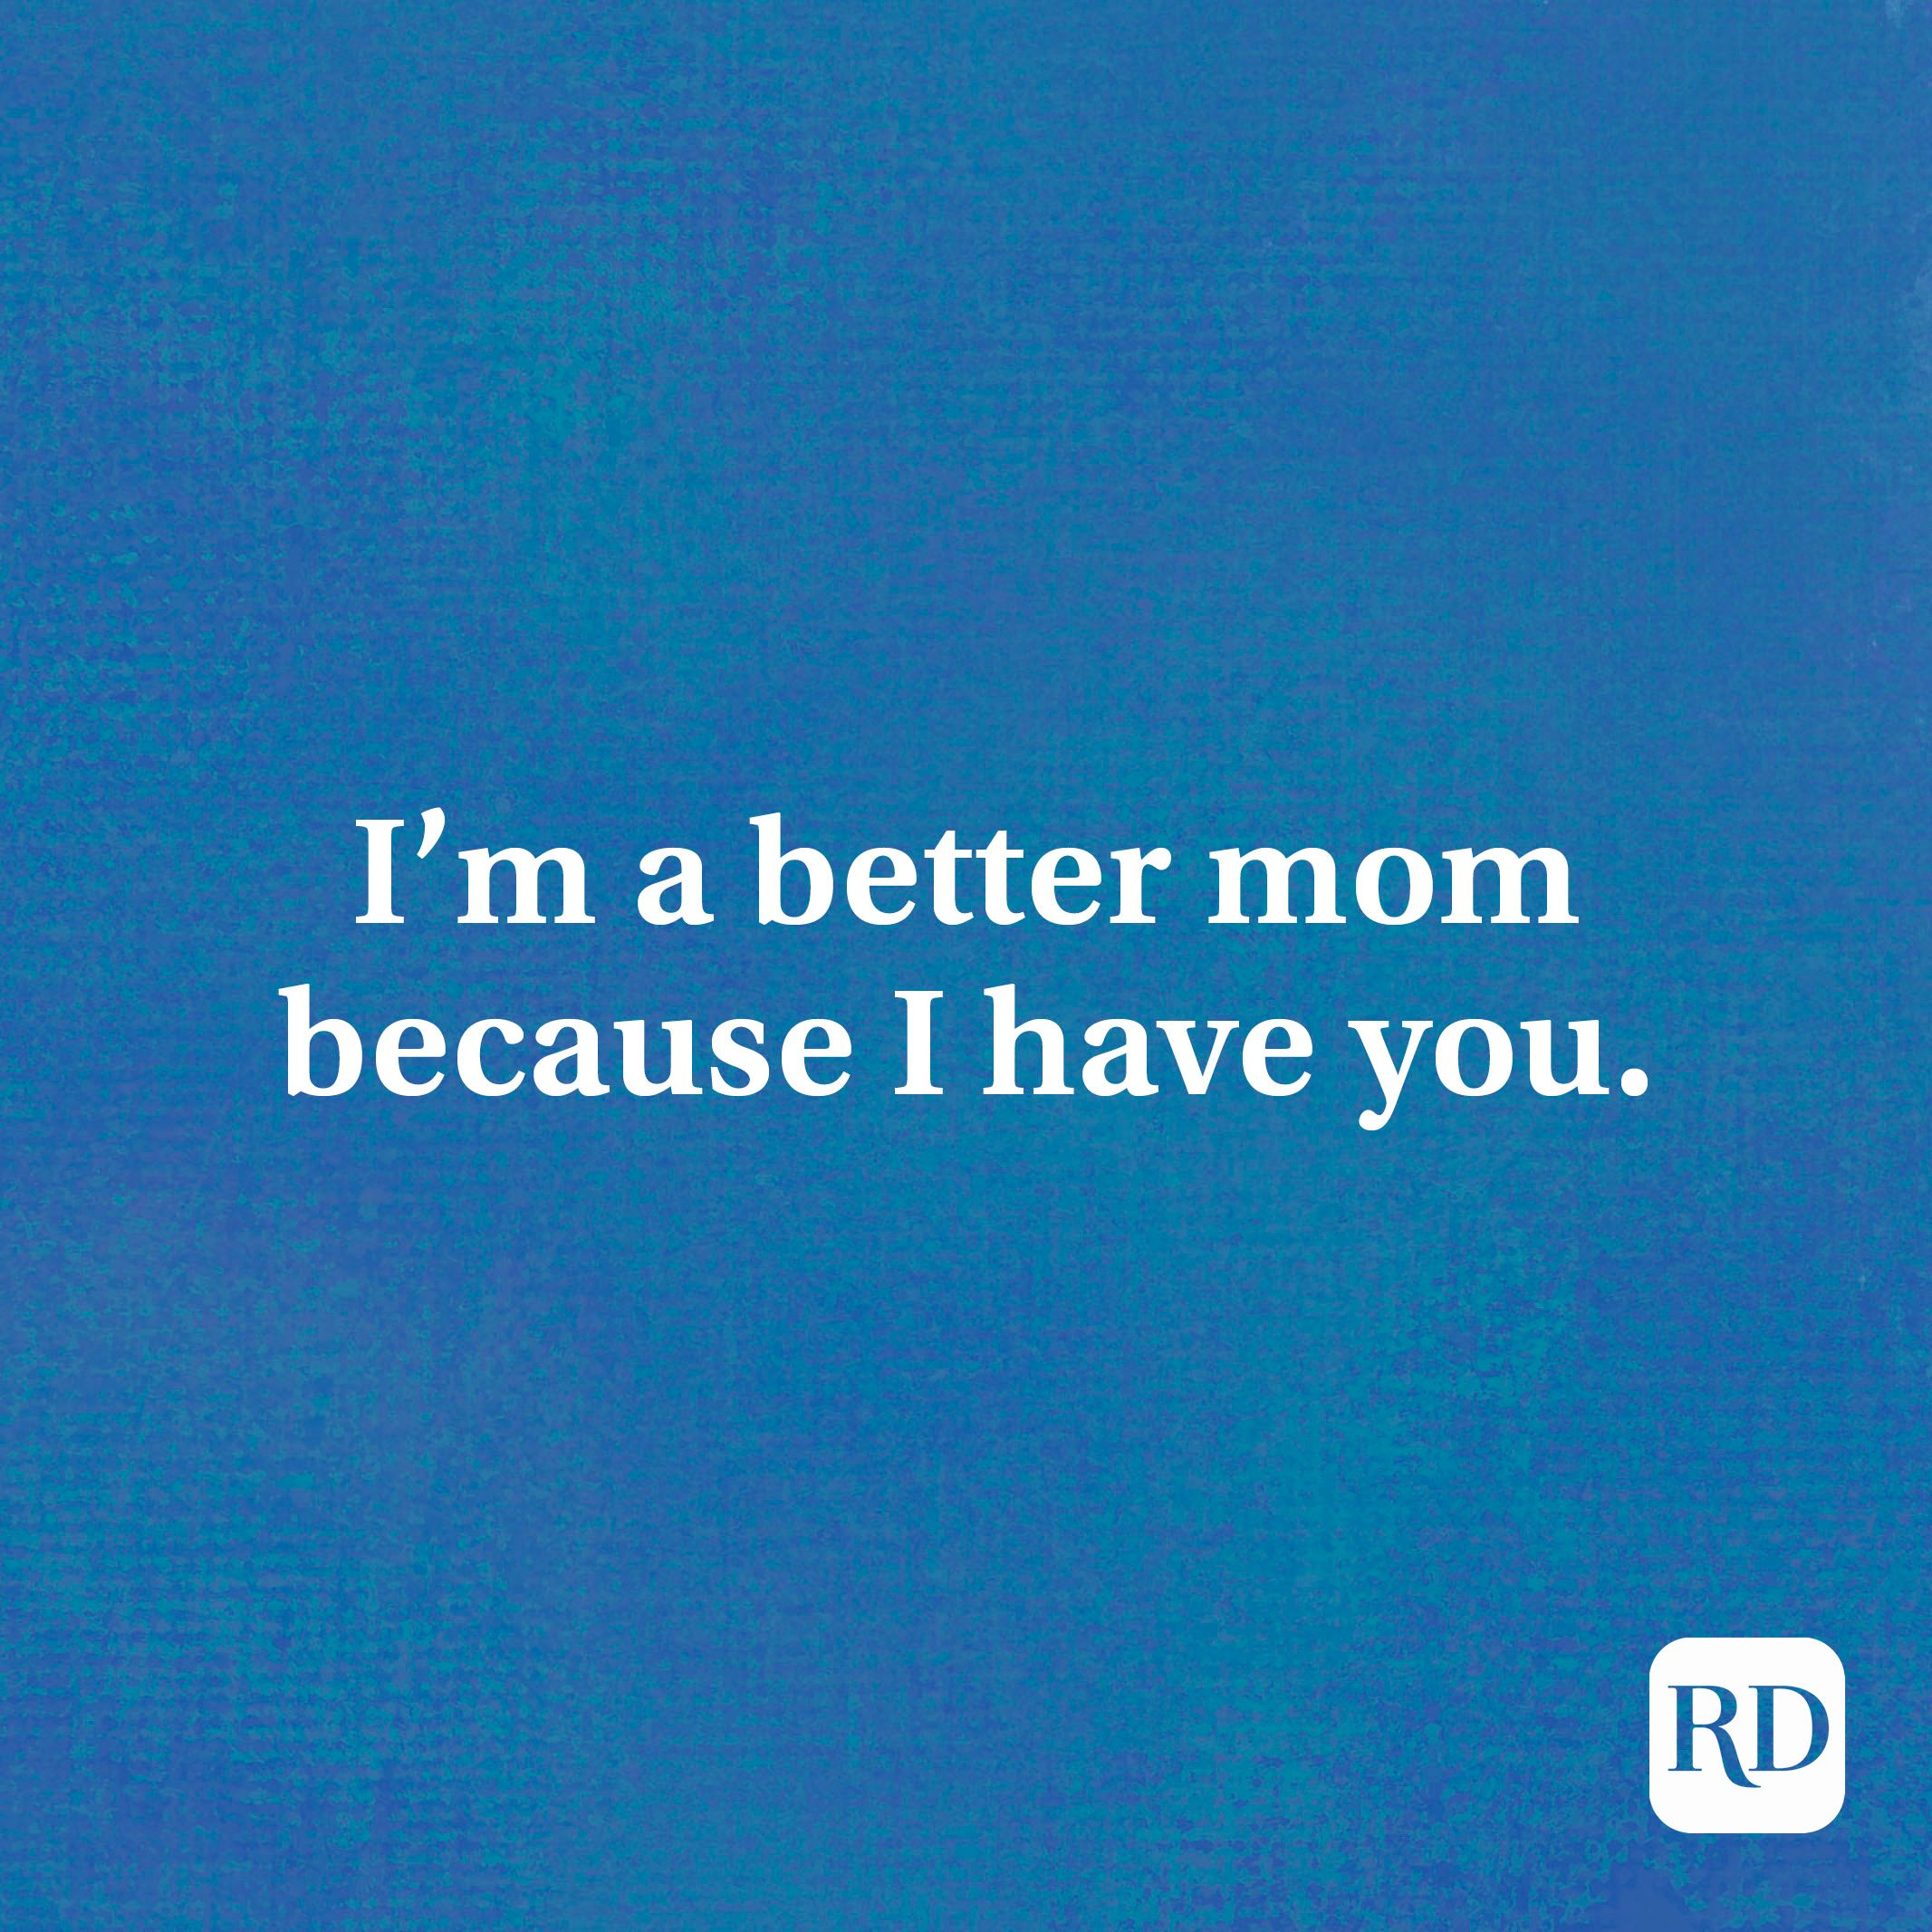 I'm a better mom because I have you.